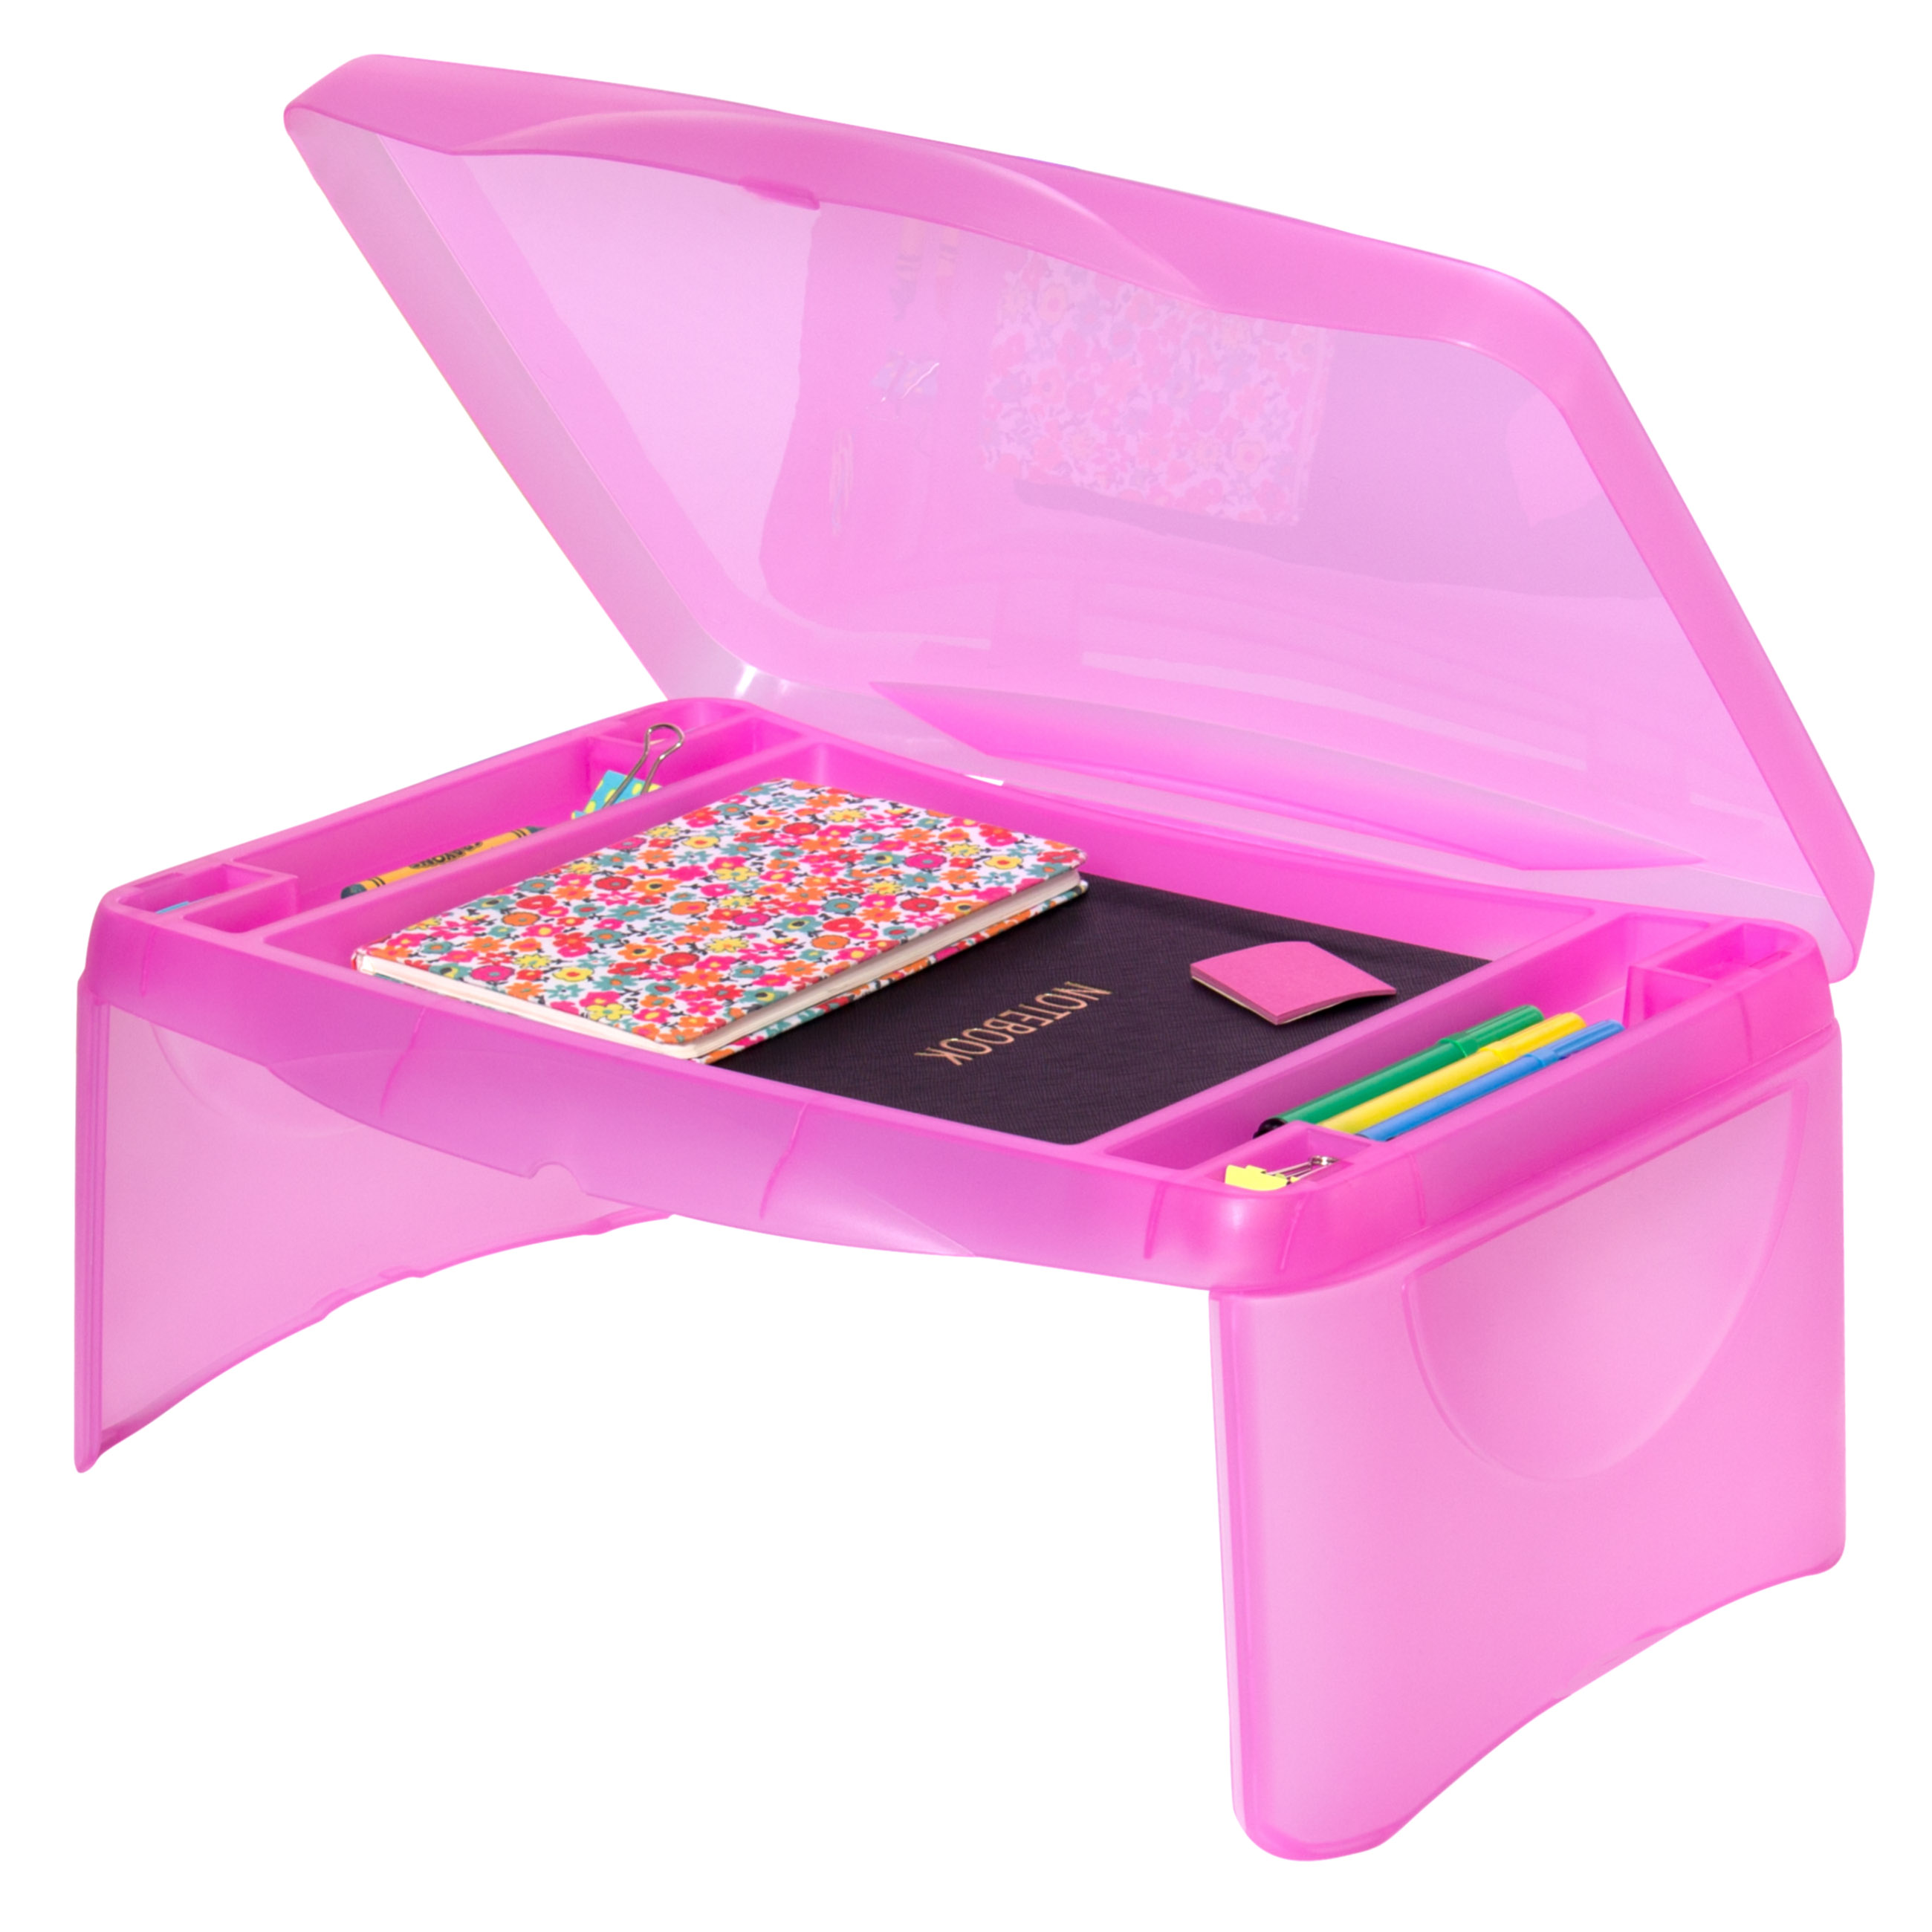 Best Choice Products Kids Folding Lap Desk W/ Storage- Pink